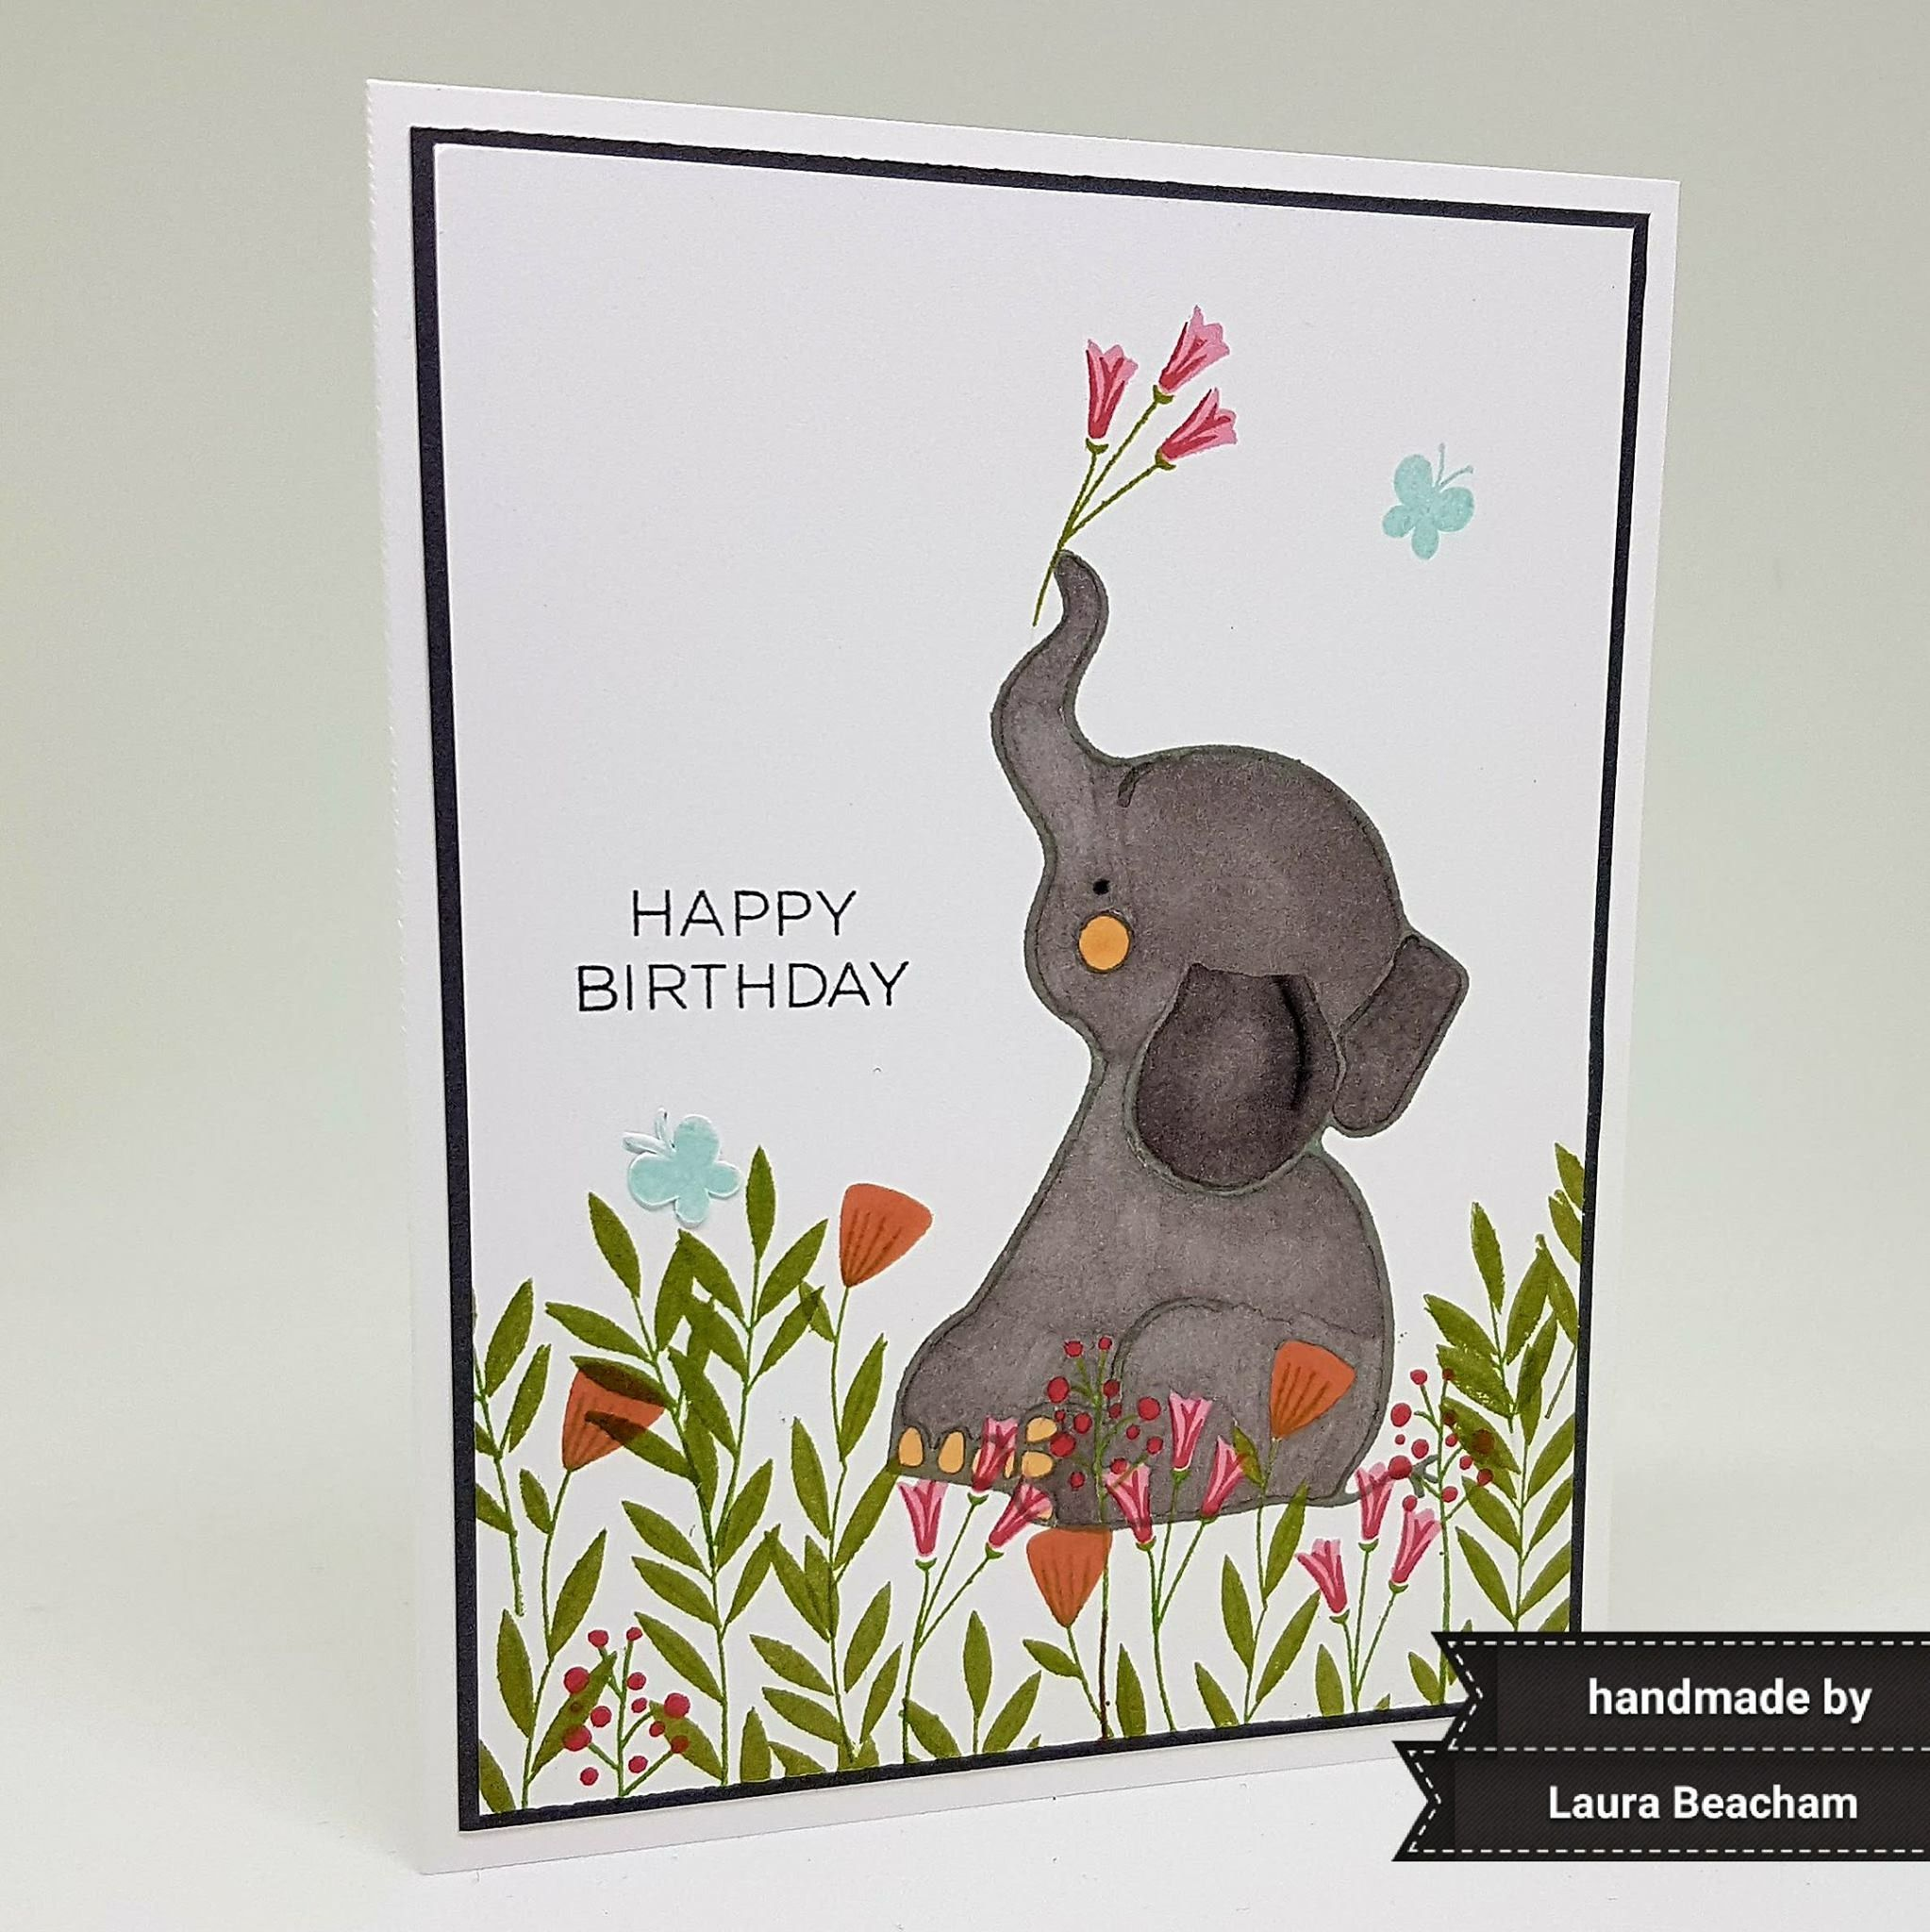 From The Heart Card Kit Ctmh Nsm From The Heart This Version By Laura Beacham Ctmh Cards Cards Sweet Cards